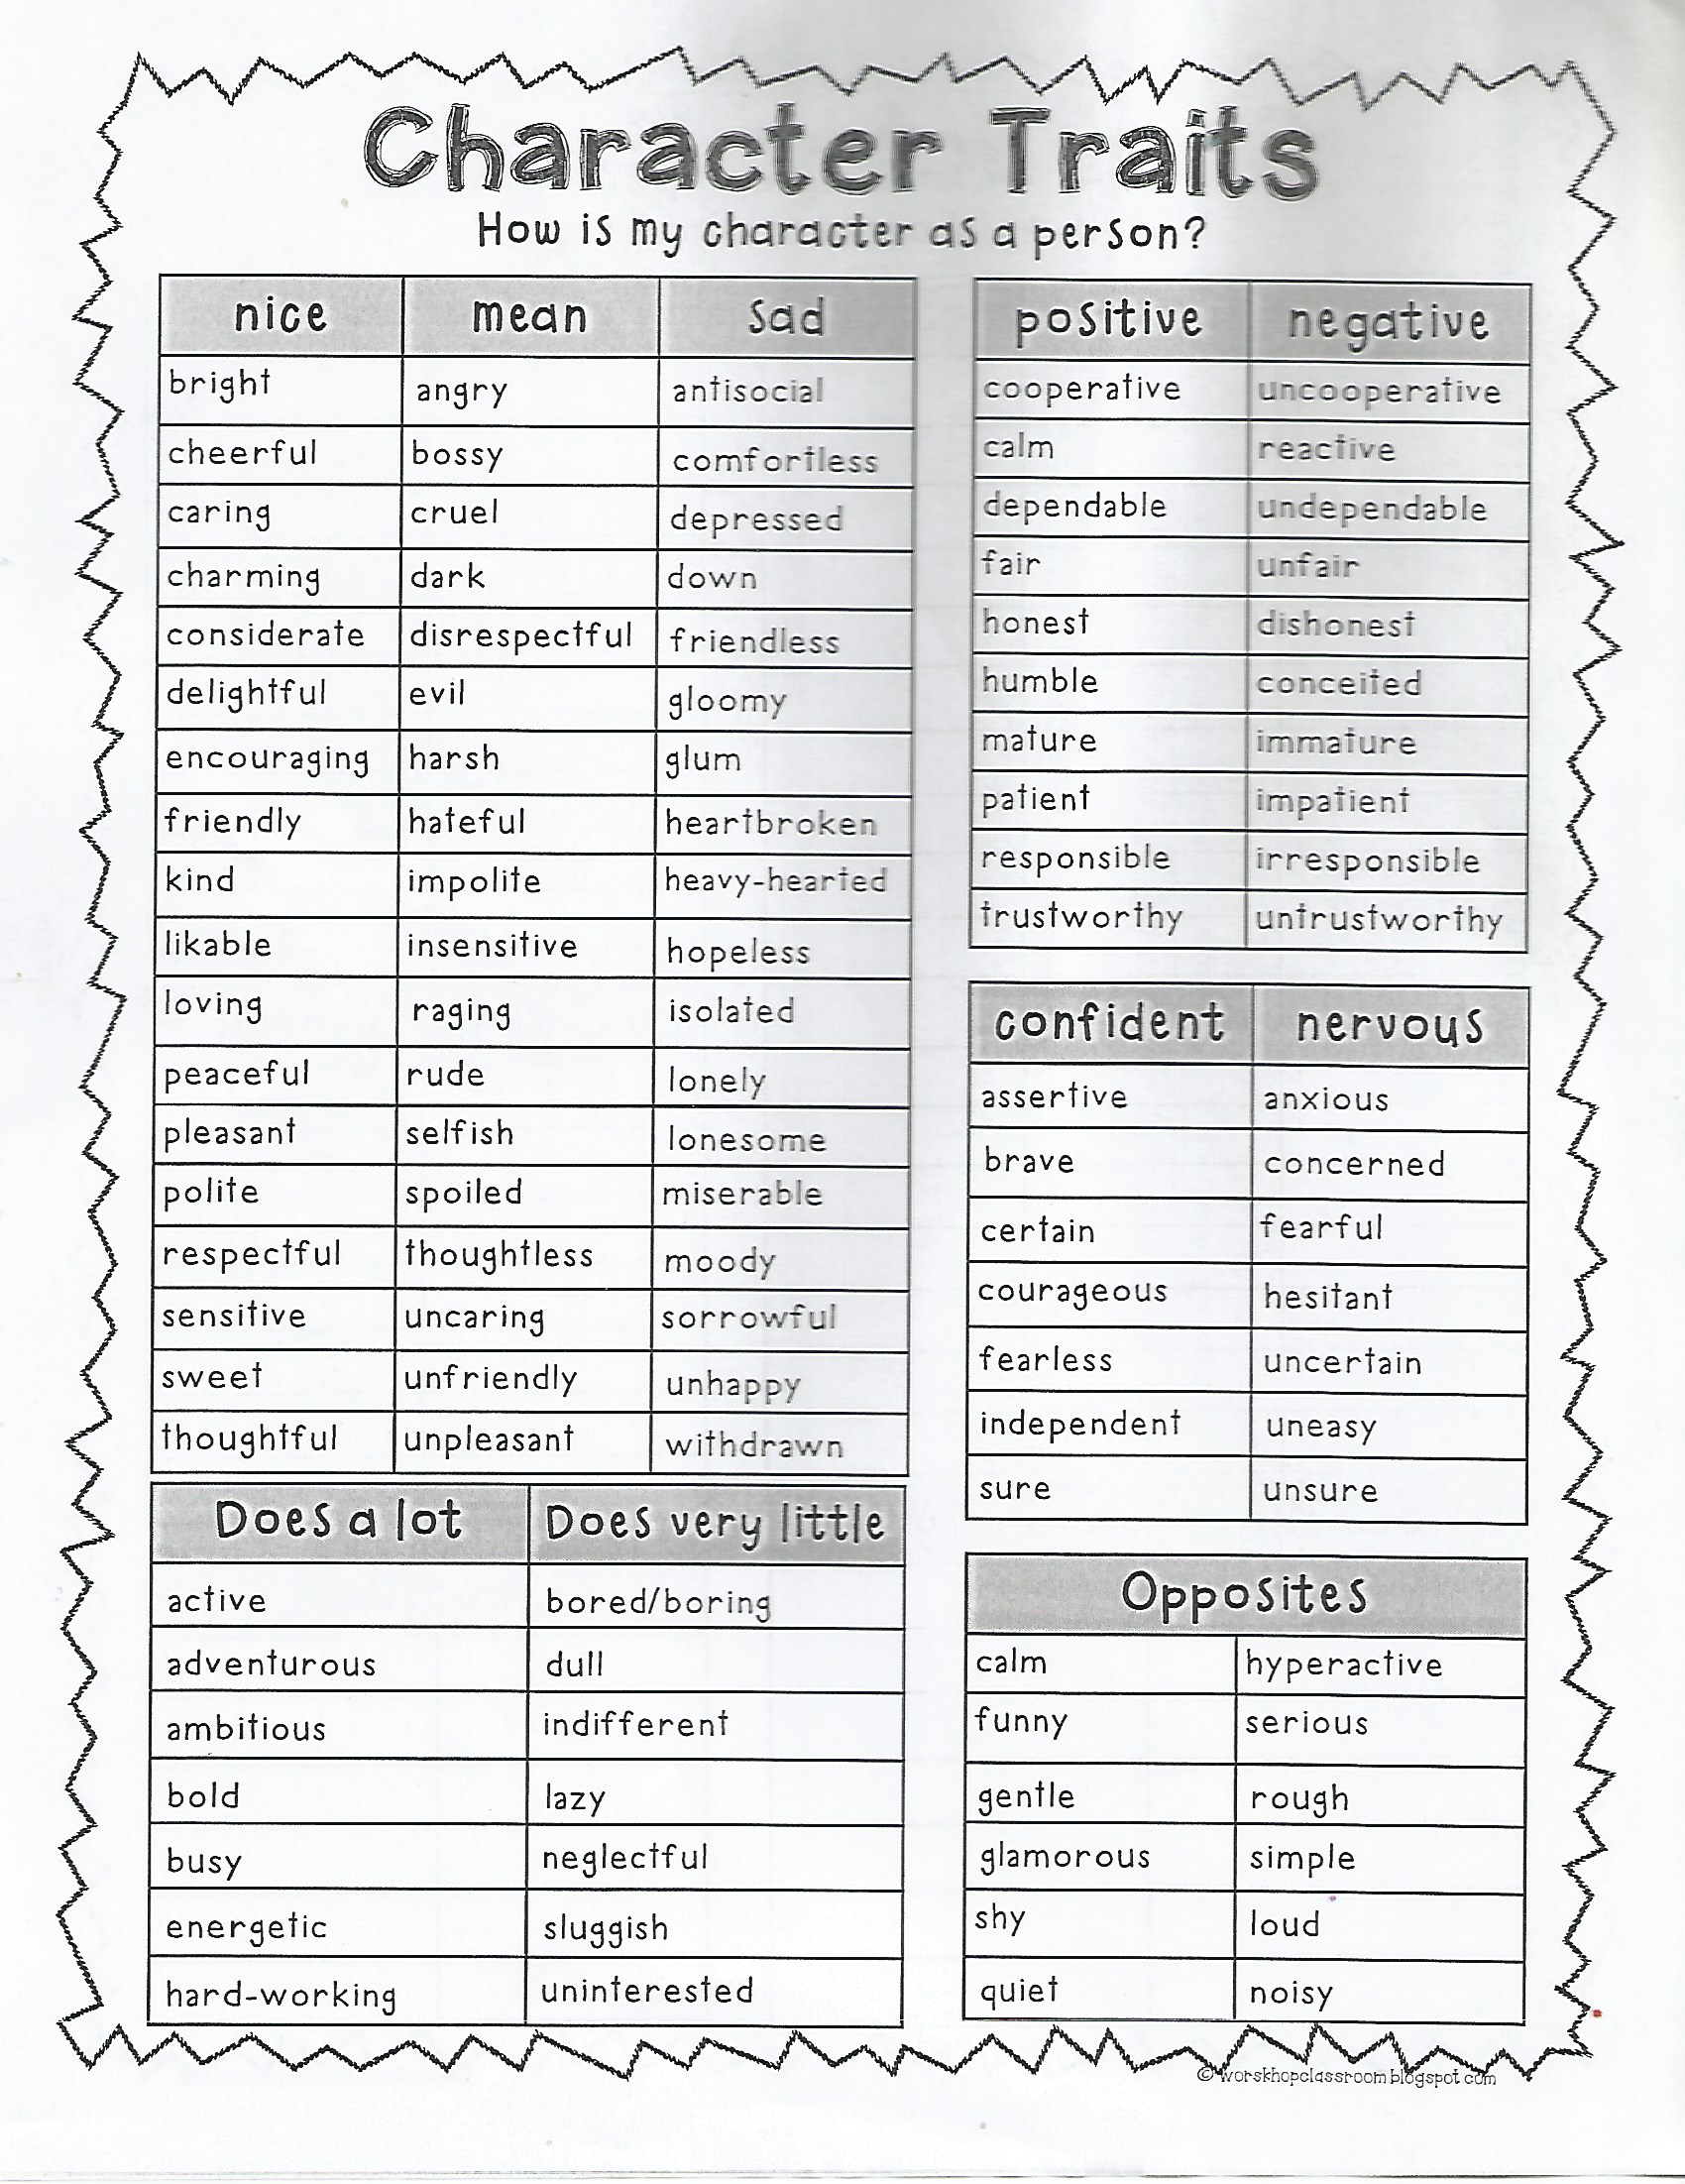 Character Traits Worksheet Answers